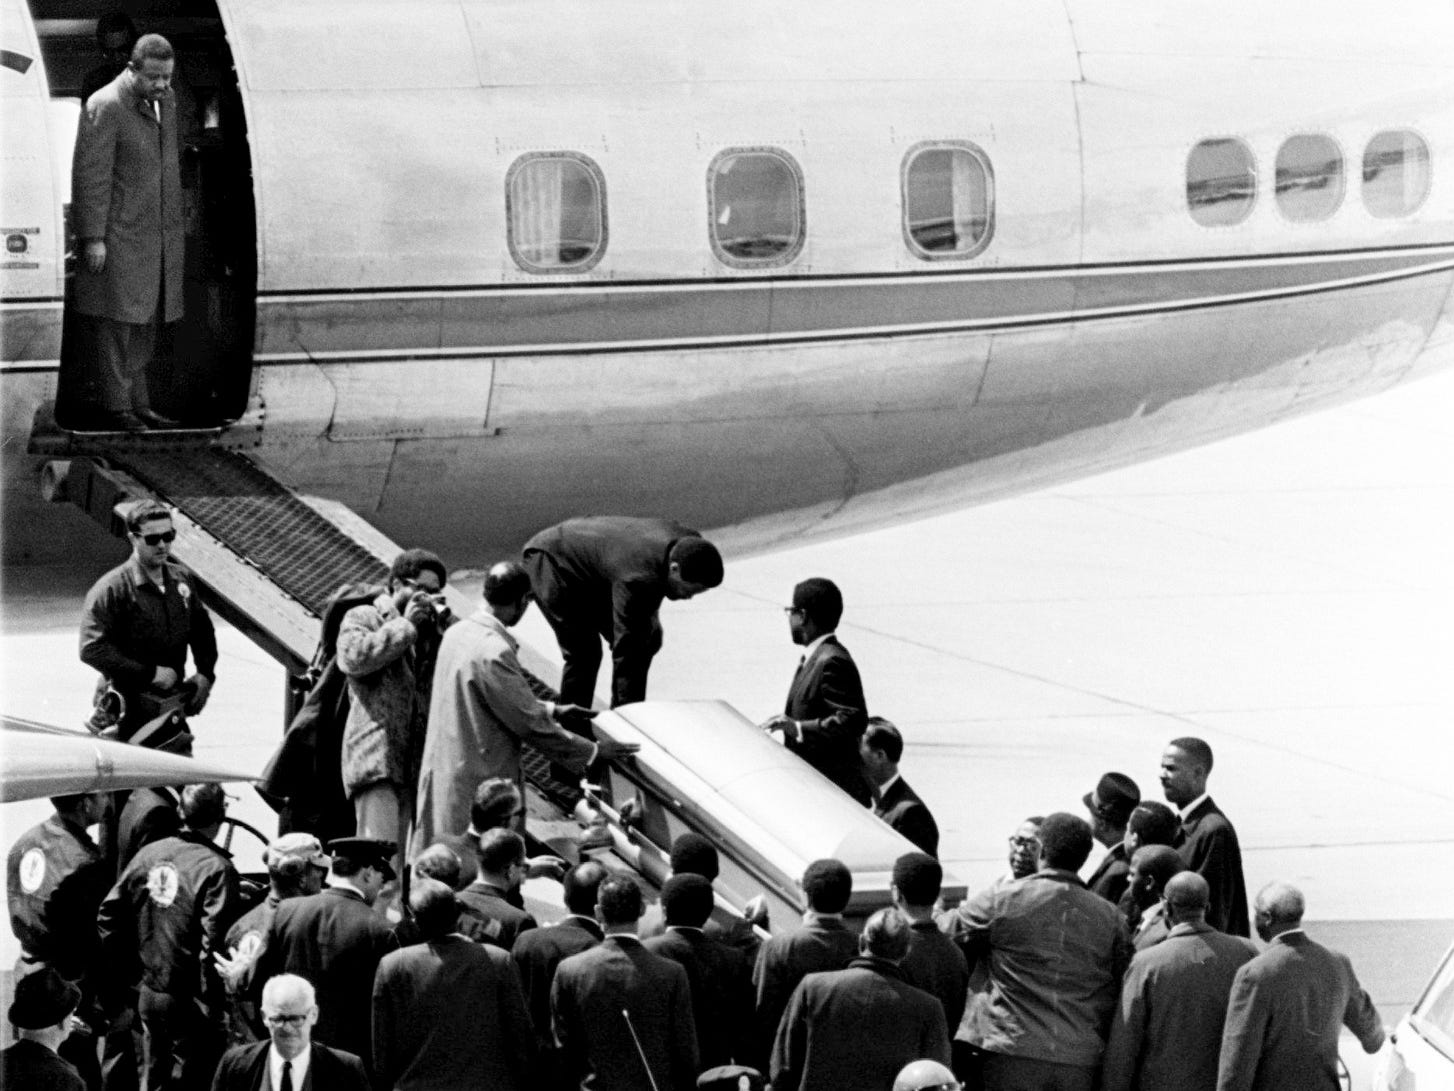 Dr. Ralph Abernathy, successor to the Rev. Martin Luther King Jr. as head of the Southern Christian Leadership Conference, stands at the top of the ramp as pallbearers lift the slain civil rights leader's casket aboard an Atlanta-bound plane April 5, 1968.